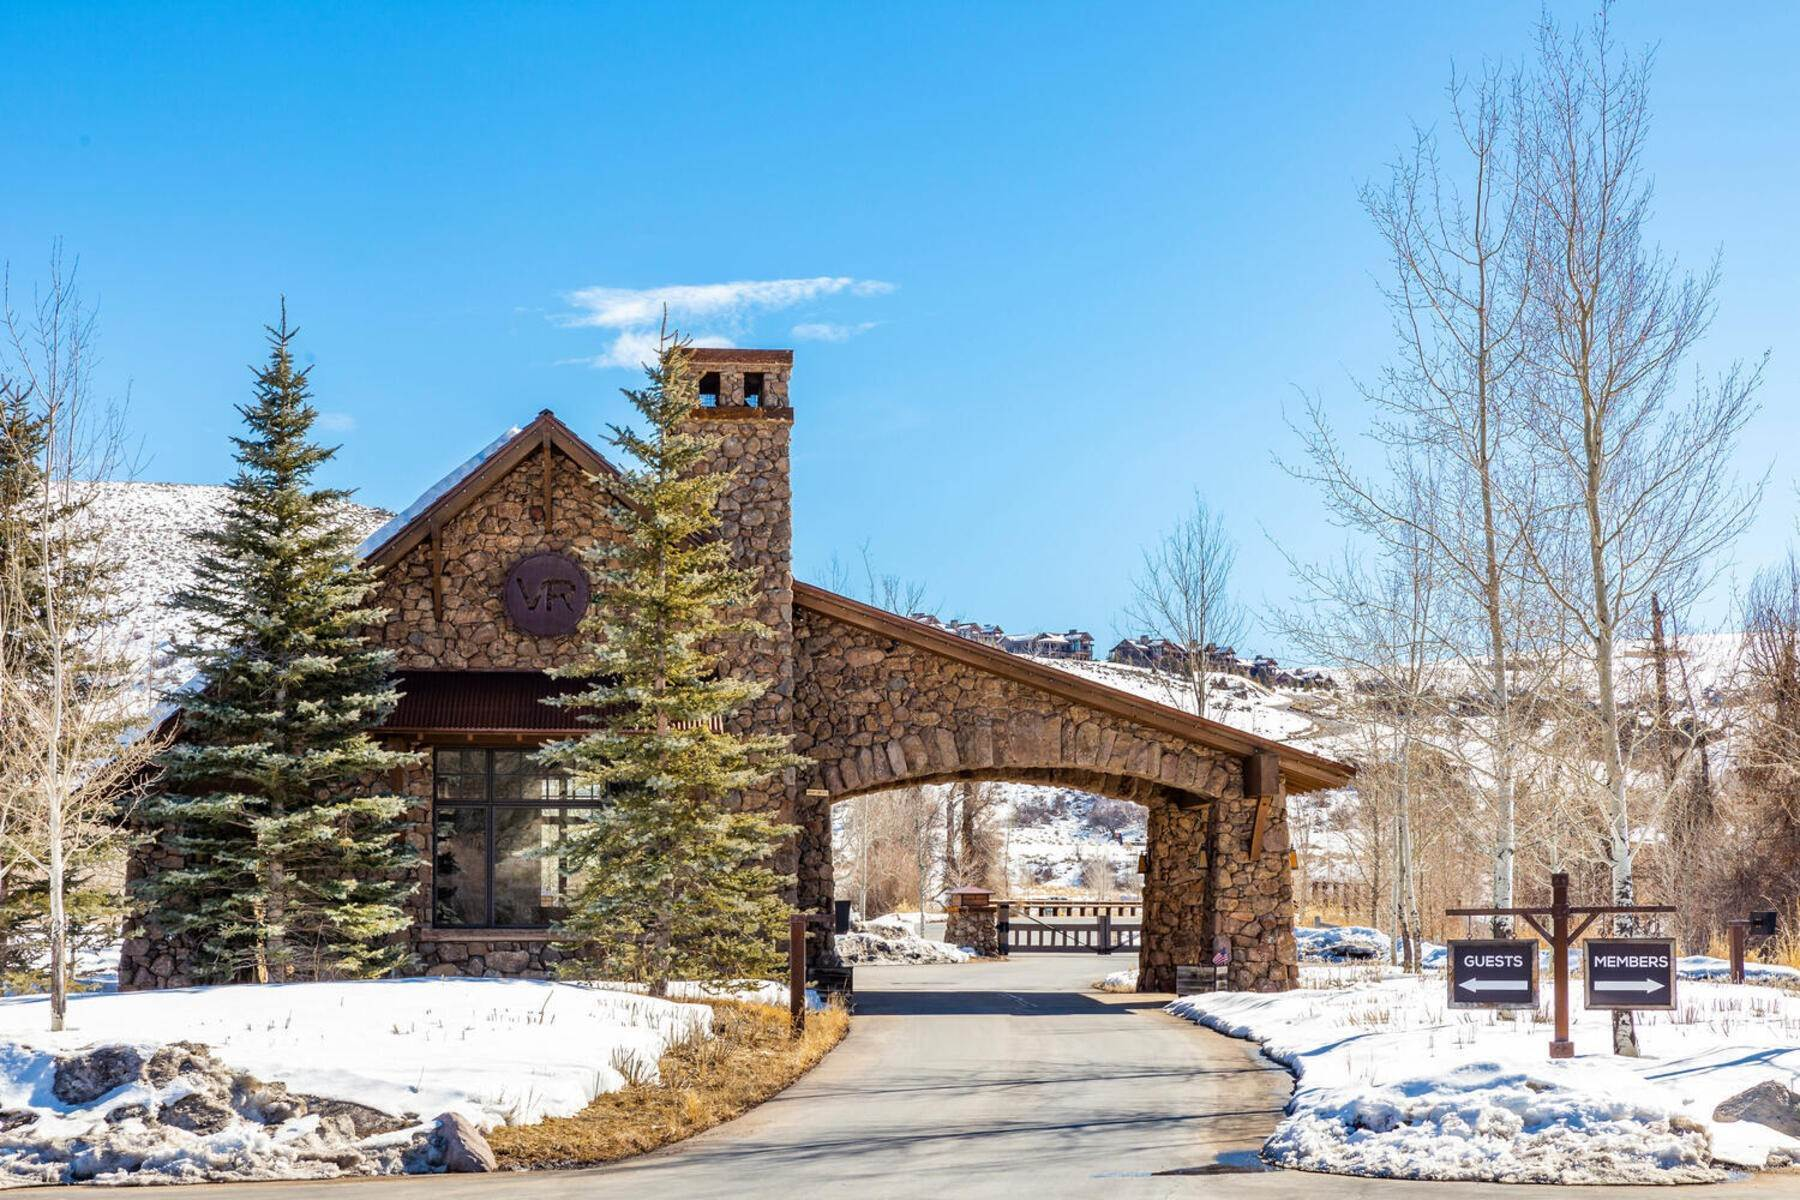 5. fractional ownership prop for Sale at 1/8 Fractional Ownership Opportunity In Brand New Kingfisher Cabin 7615 E Stardust Court #319E, 5.13 Heber City, Utah 84032 United States